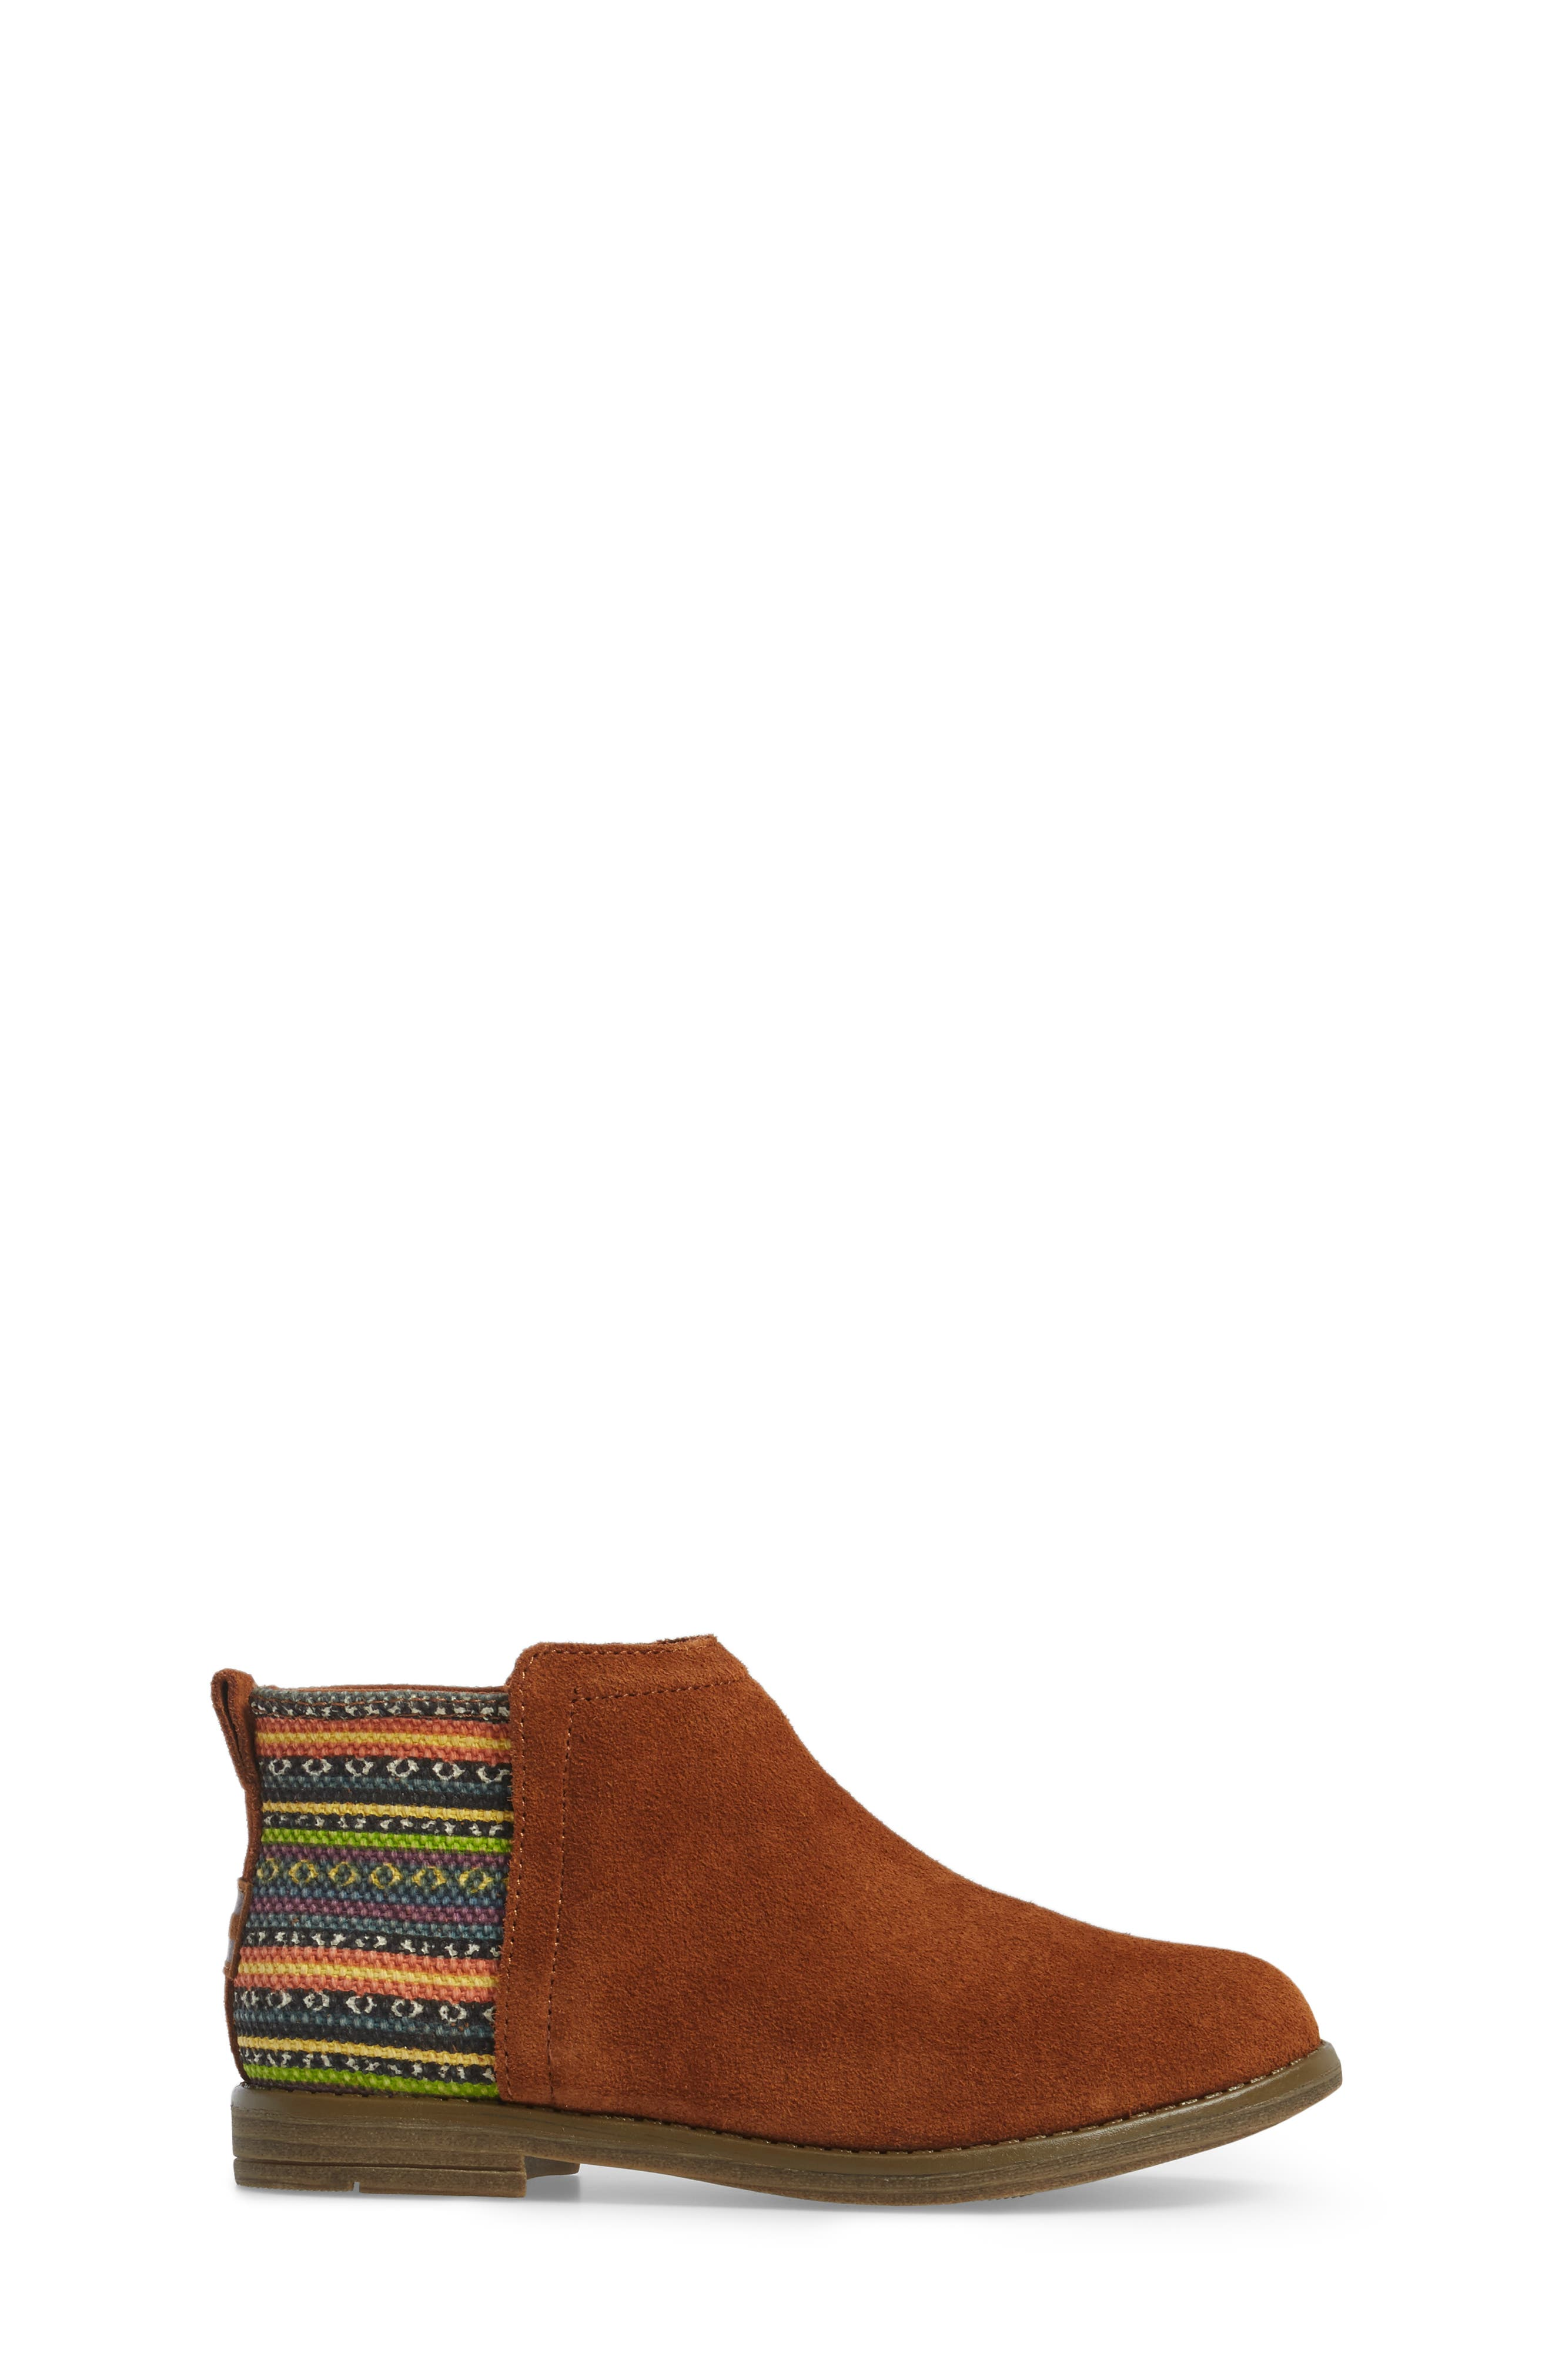 Deia Mixed Media Bootie,                             Alternate thumbnail 3, color,                             Cinnamon Suede